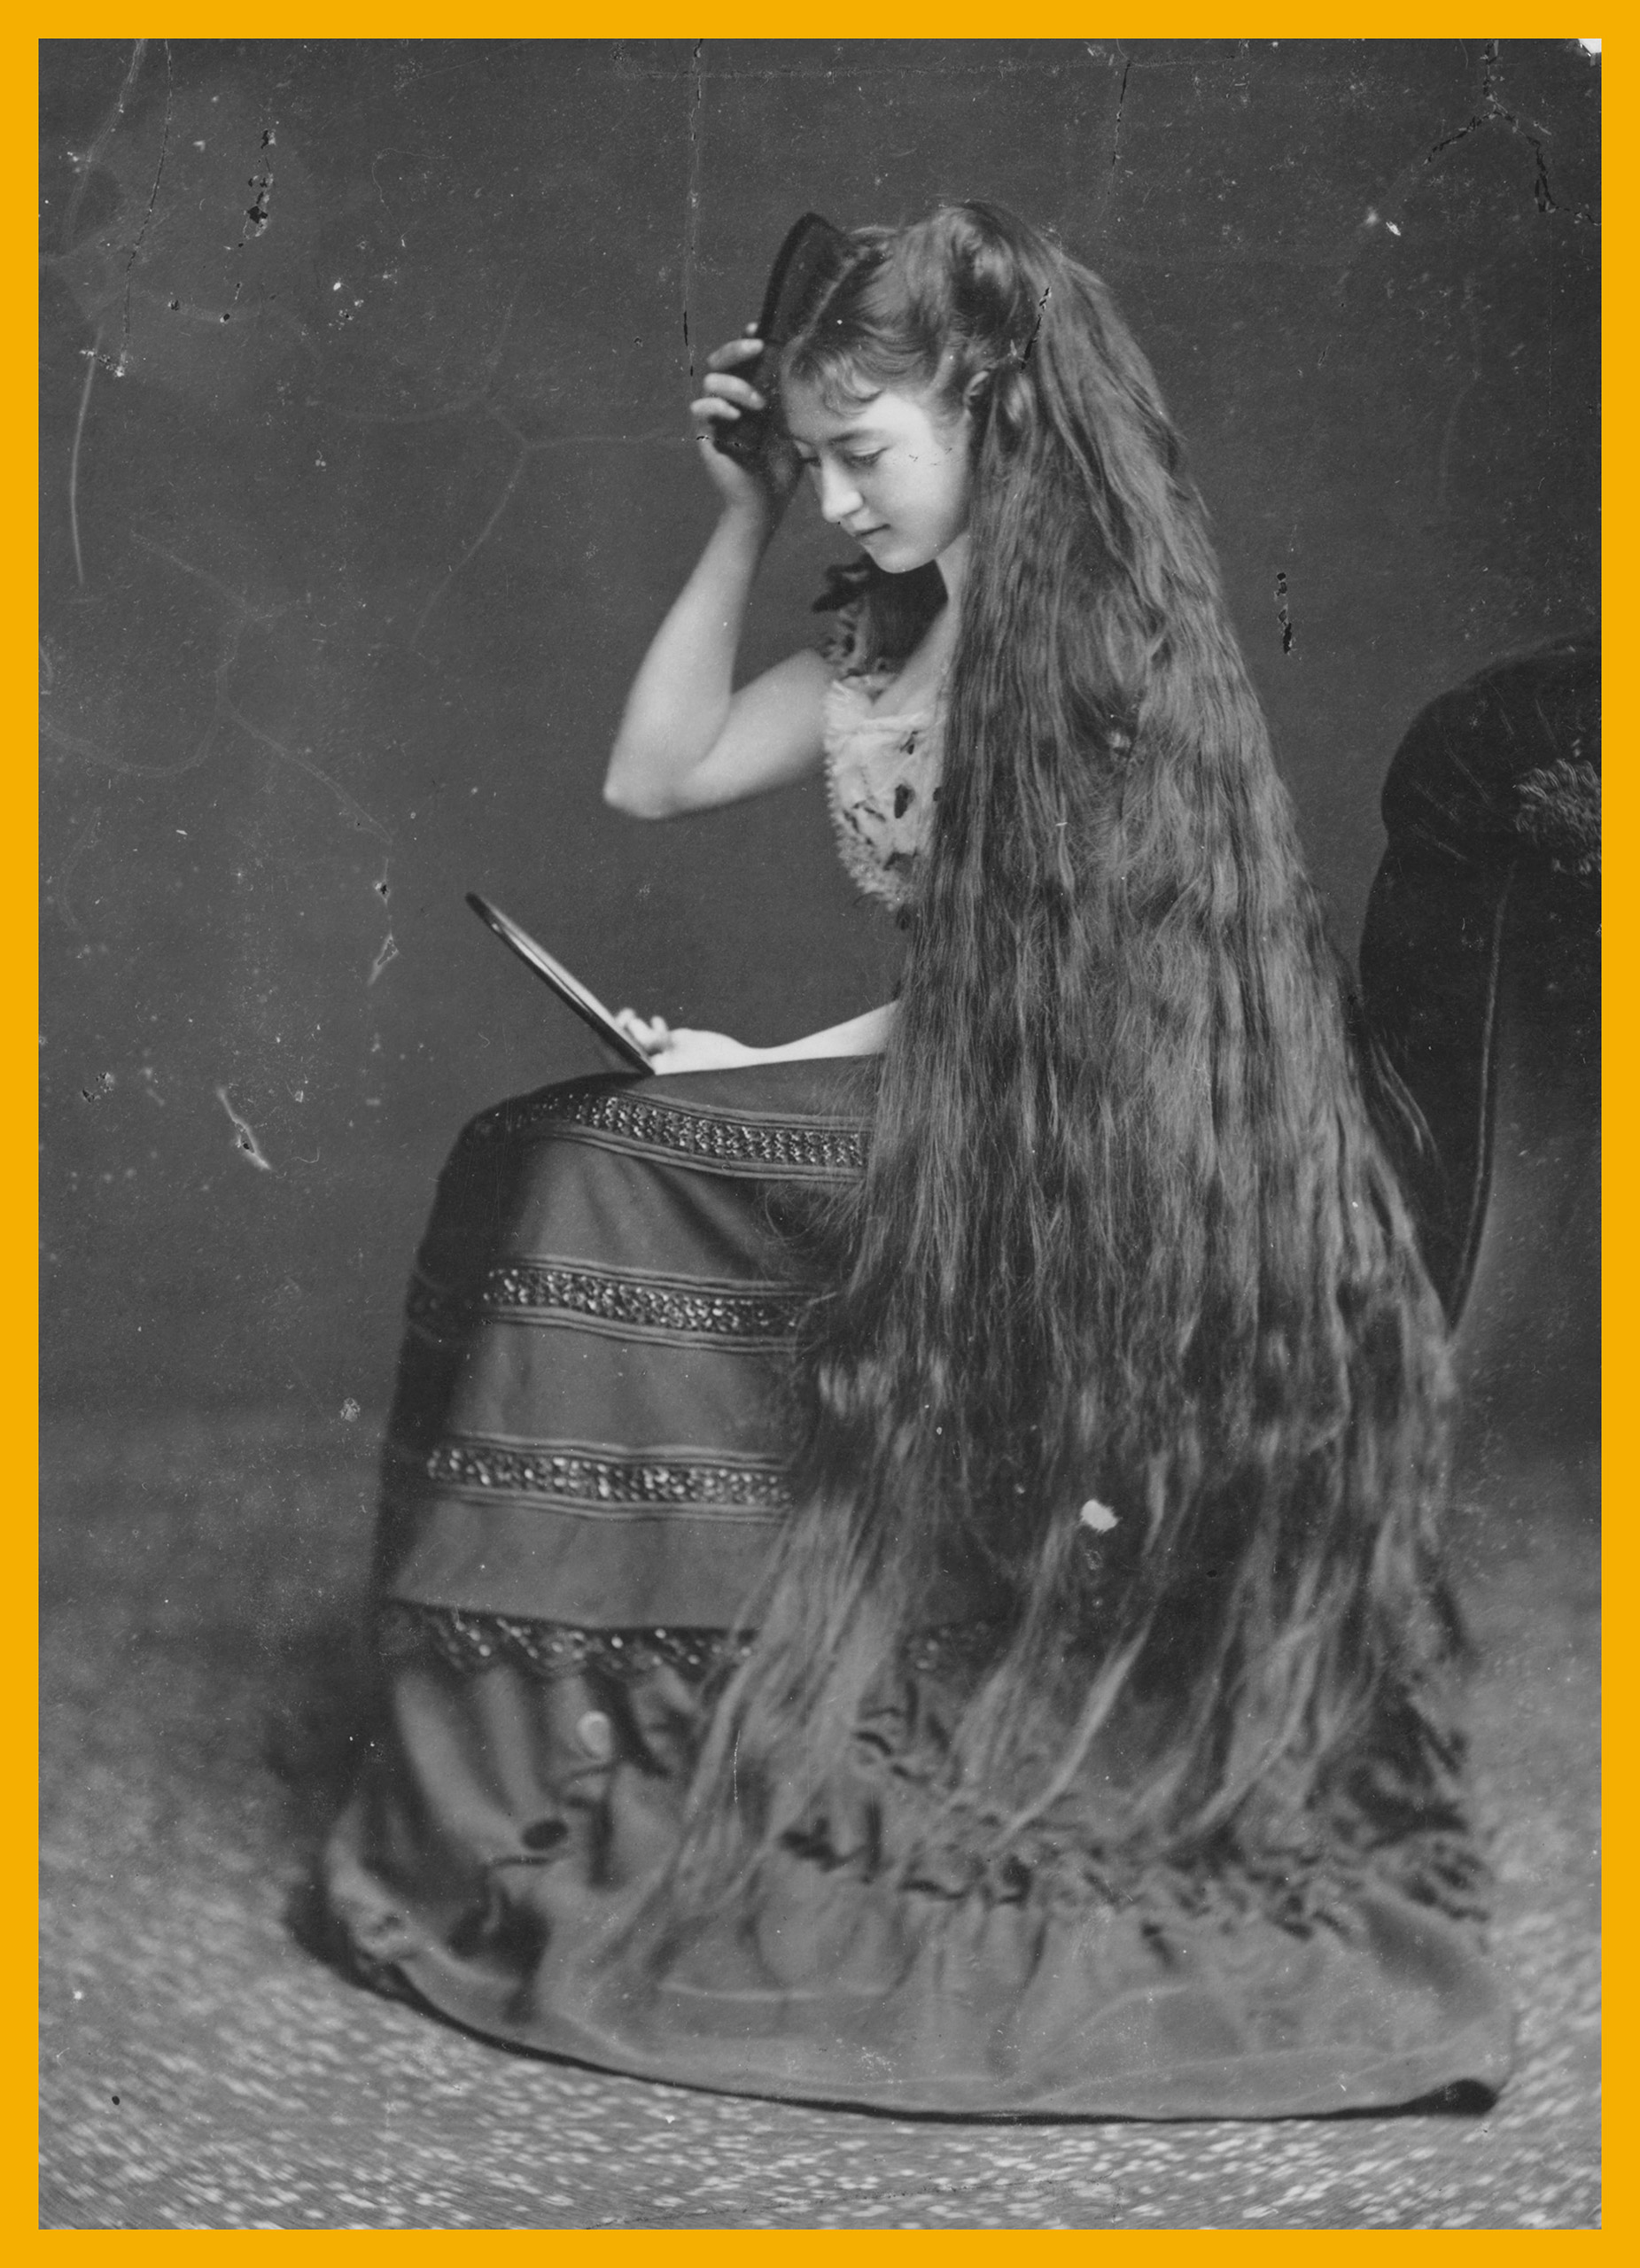 Mrs Frampton combing her long hair with the help of a mirror, circa 1885.